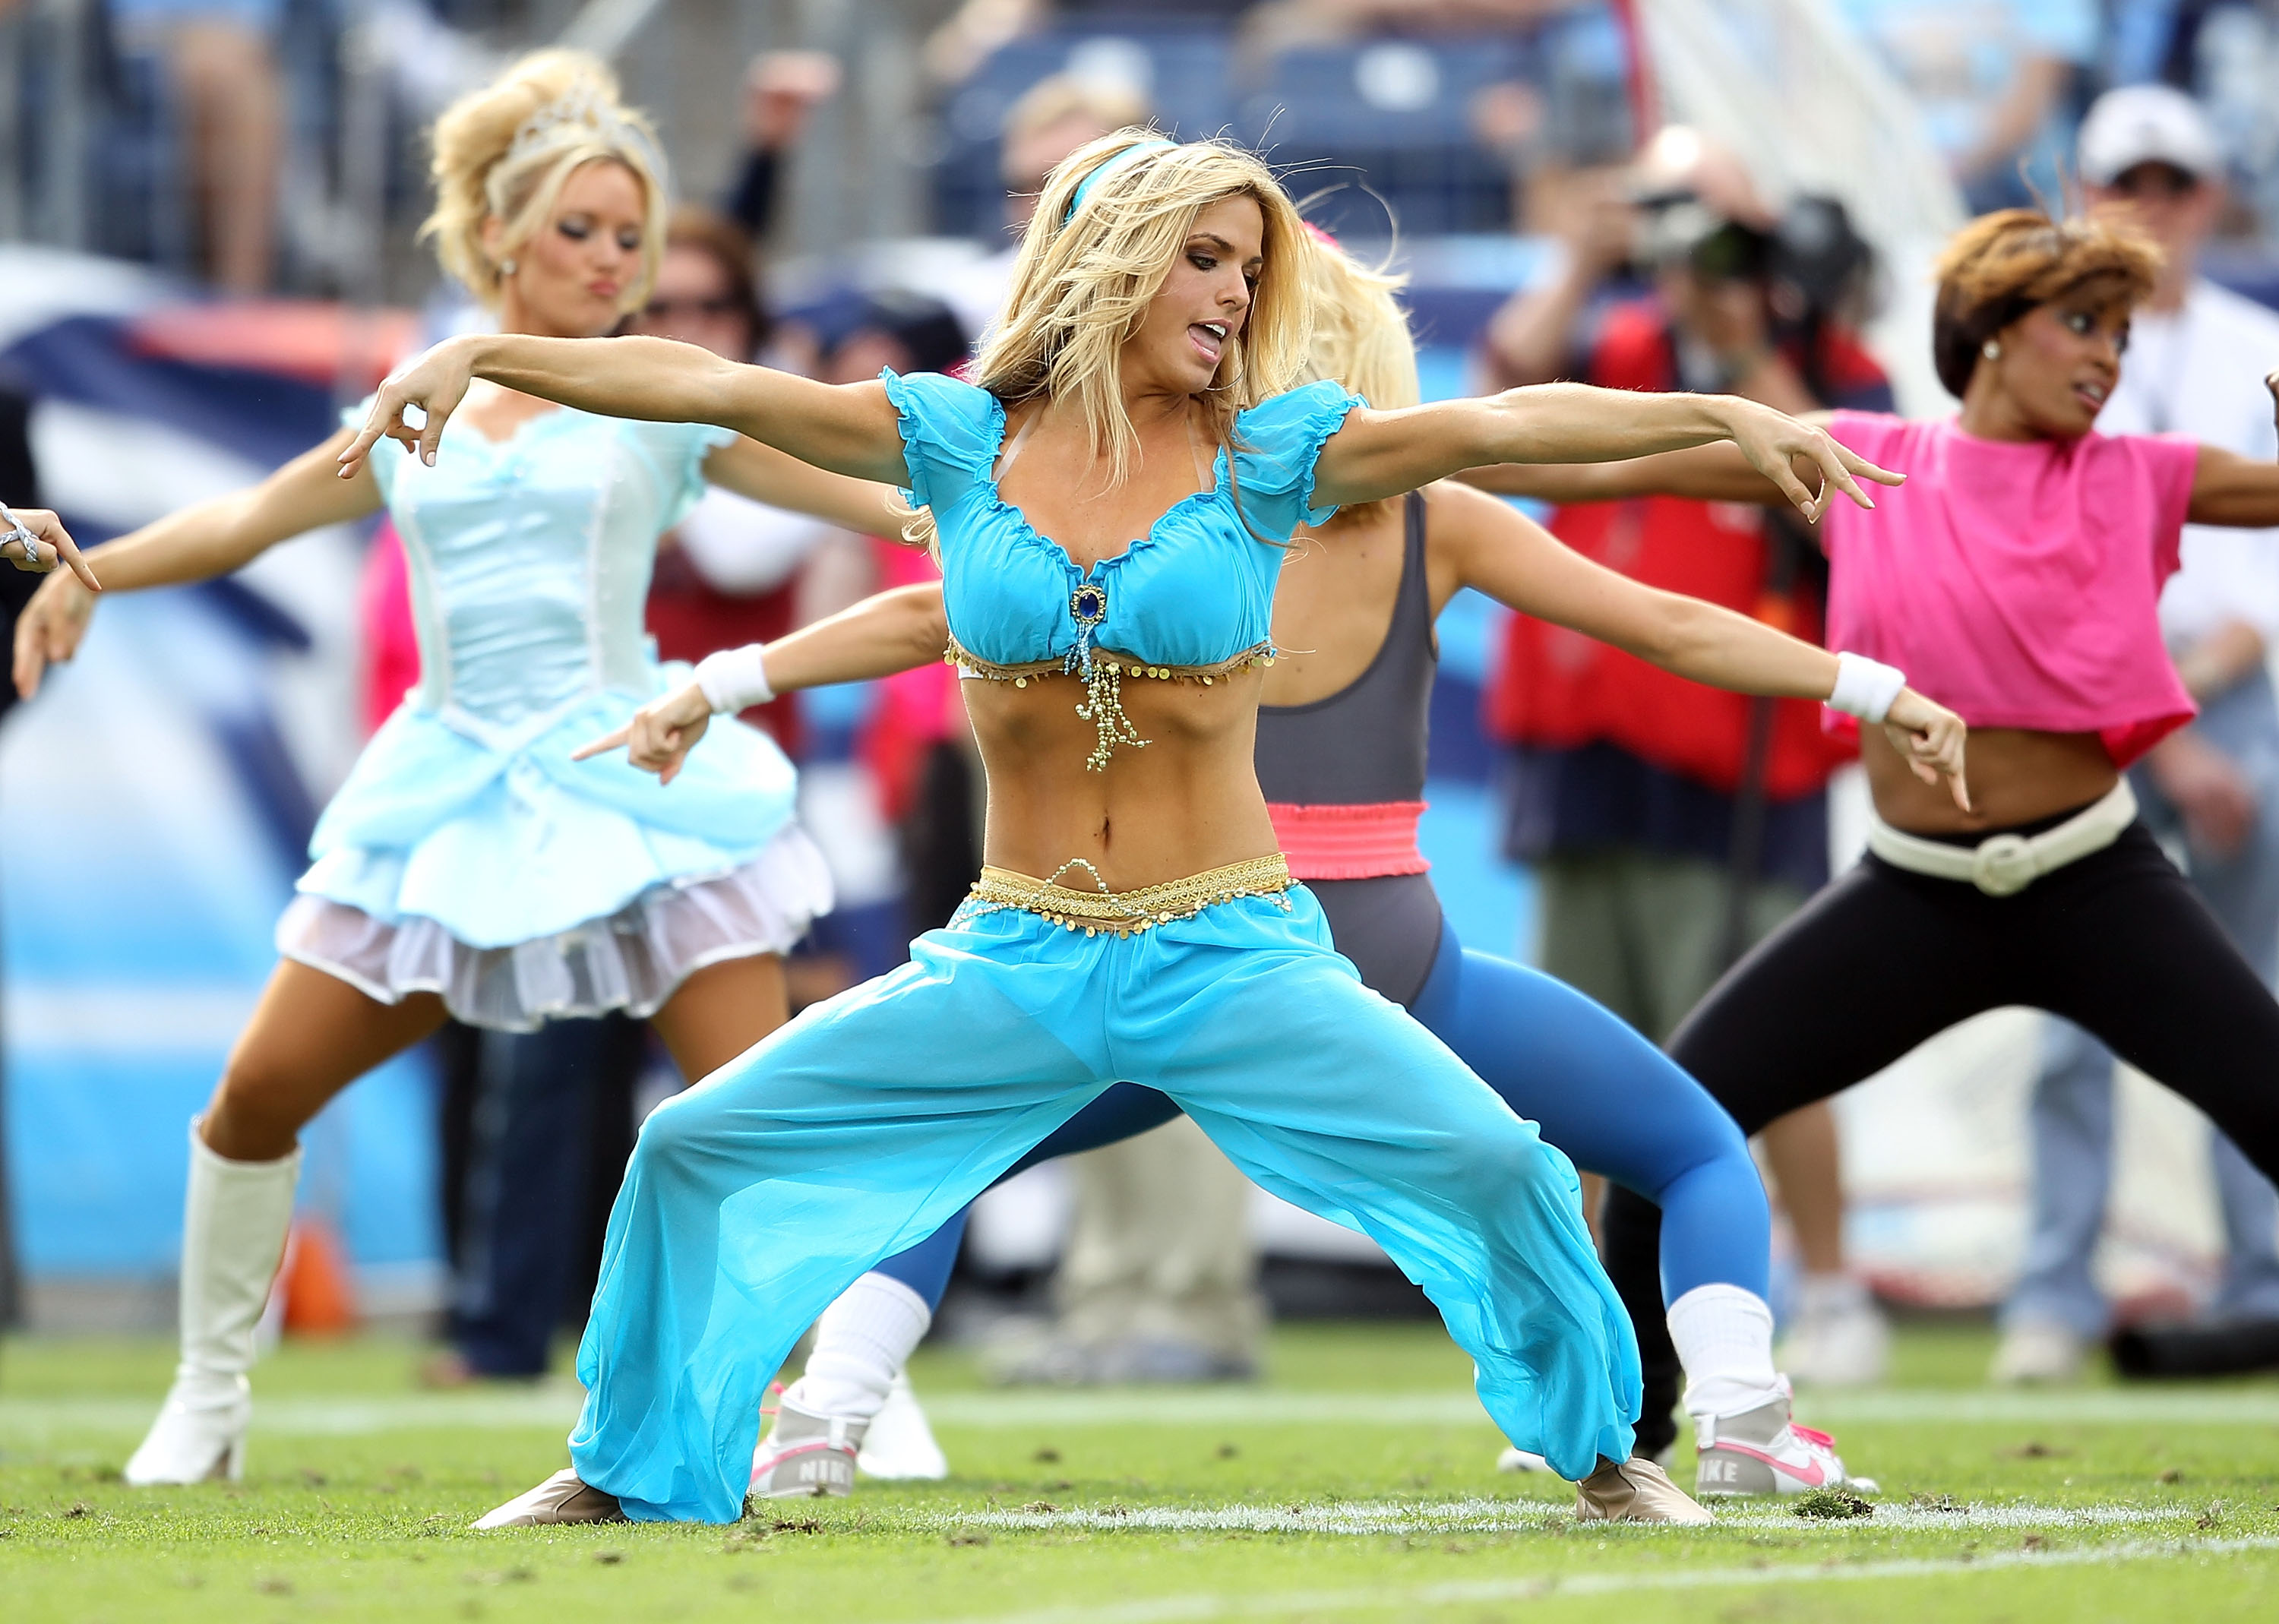 NASHVILLE, TN - OCTOBER 24:  Tennessee Titans cheerleaders perform during the Philadelphia Eagles  NFL game against the Tennessee Titans at LP Field on October 24, 2010 in Nashville, Tennessee.  (Photo by Andy Lyons/Getty Images)